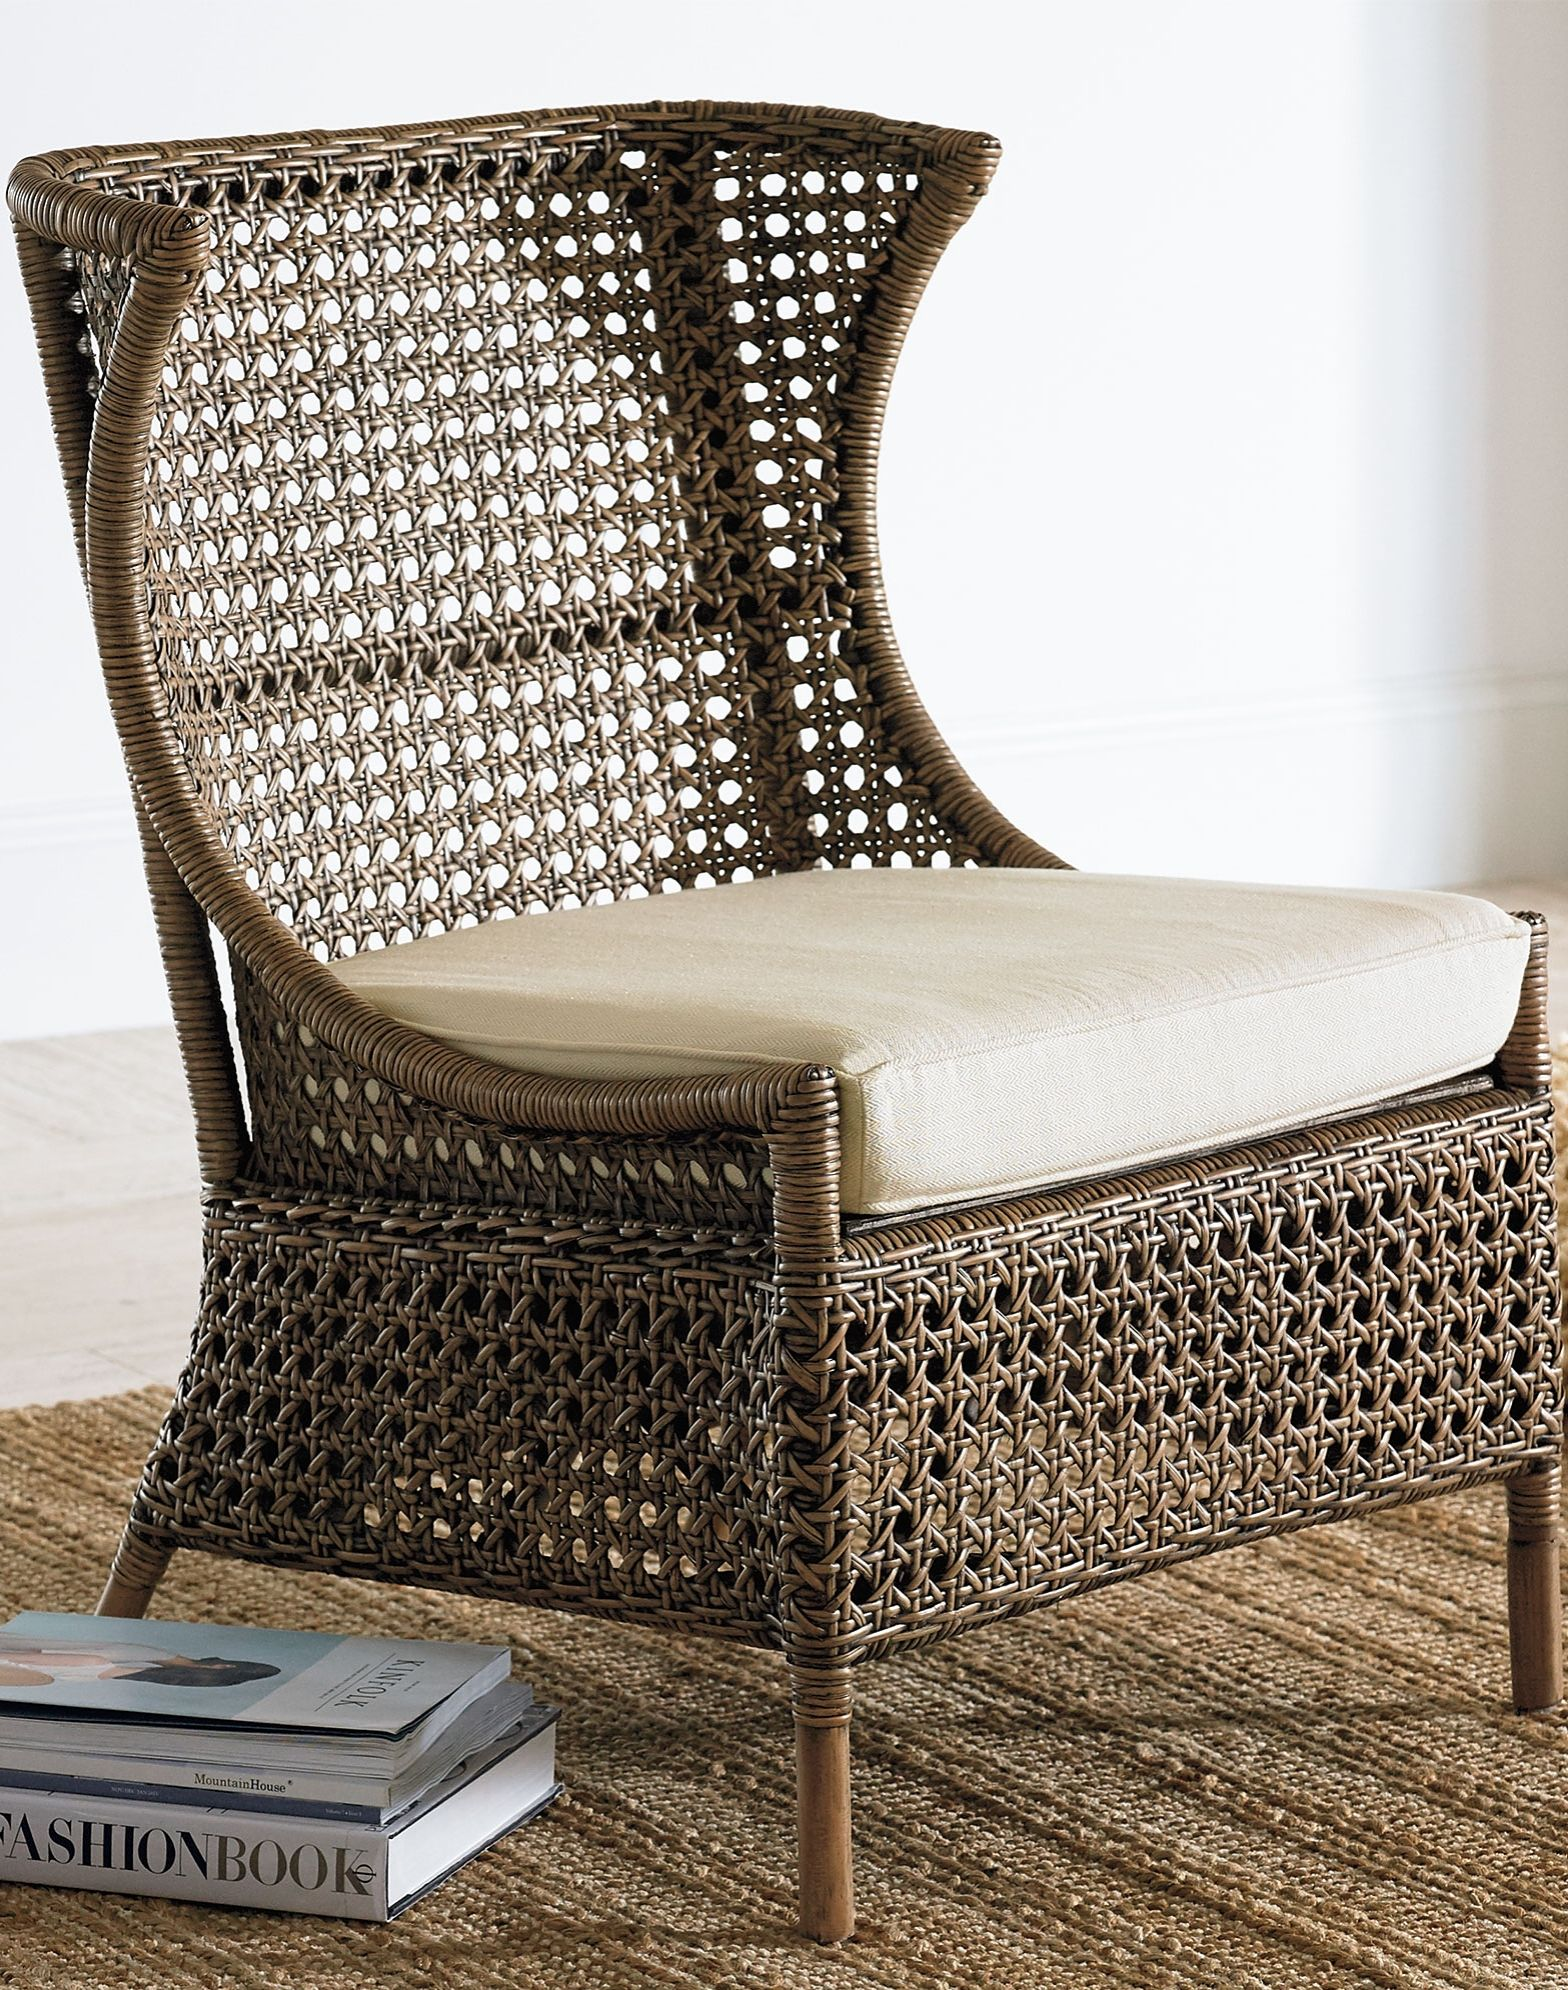 Two stylish highback rattan chairs delight with two